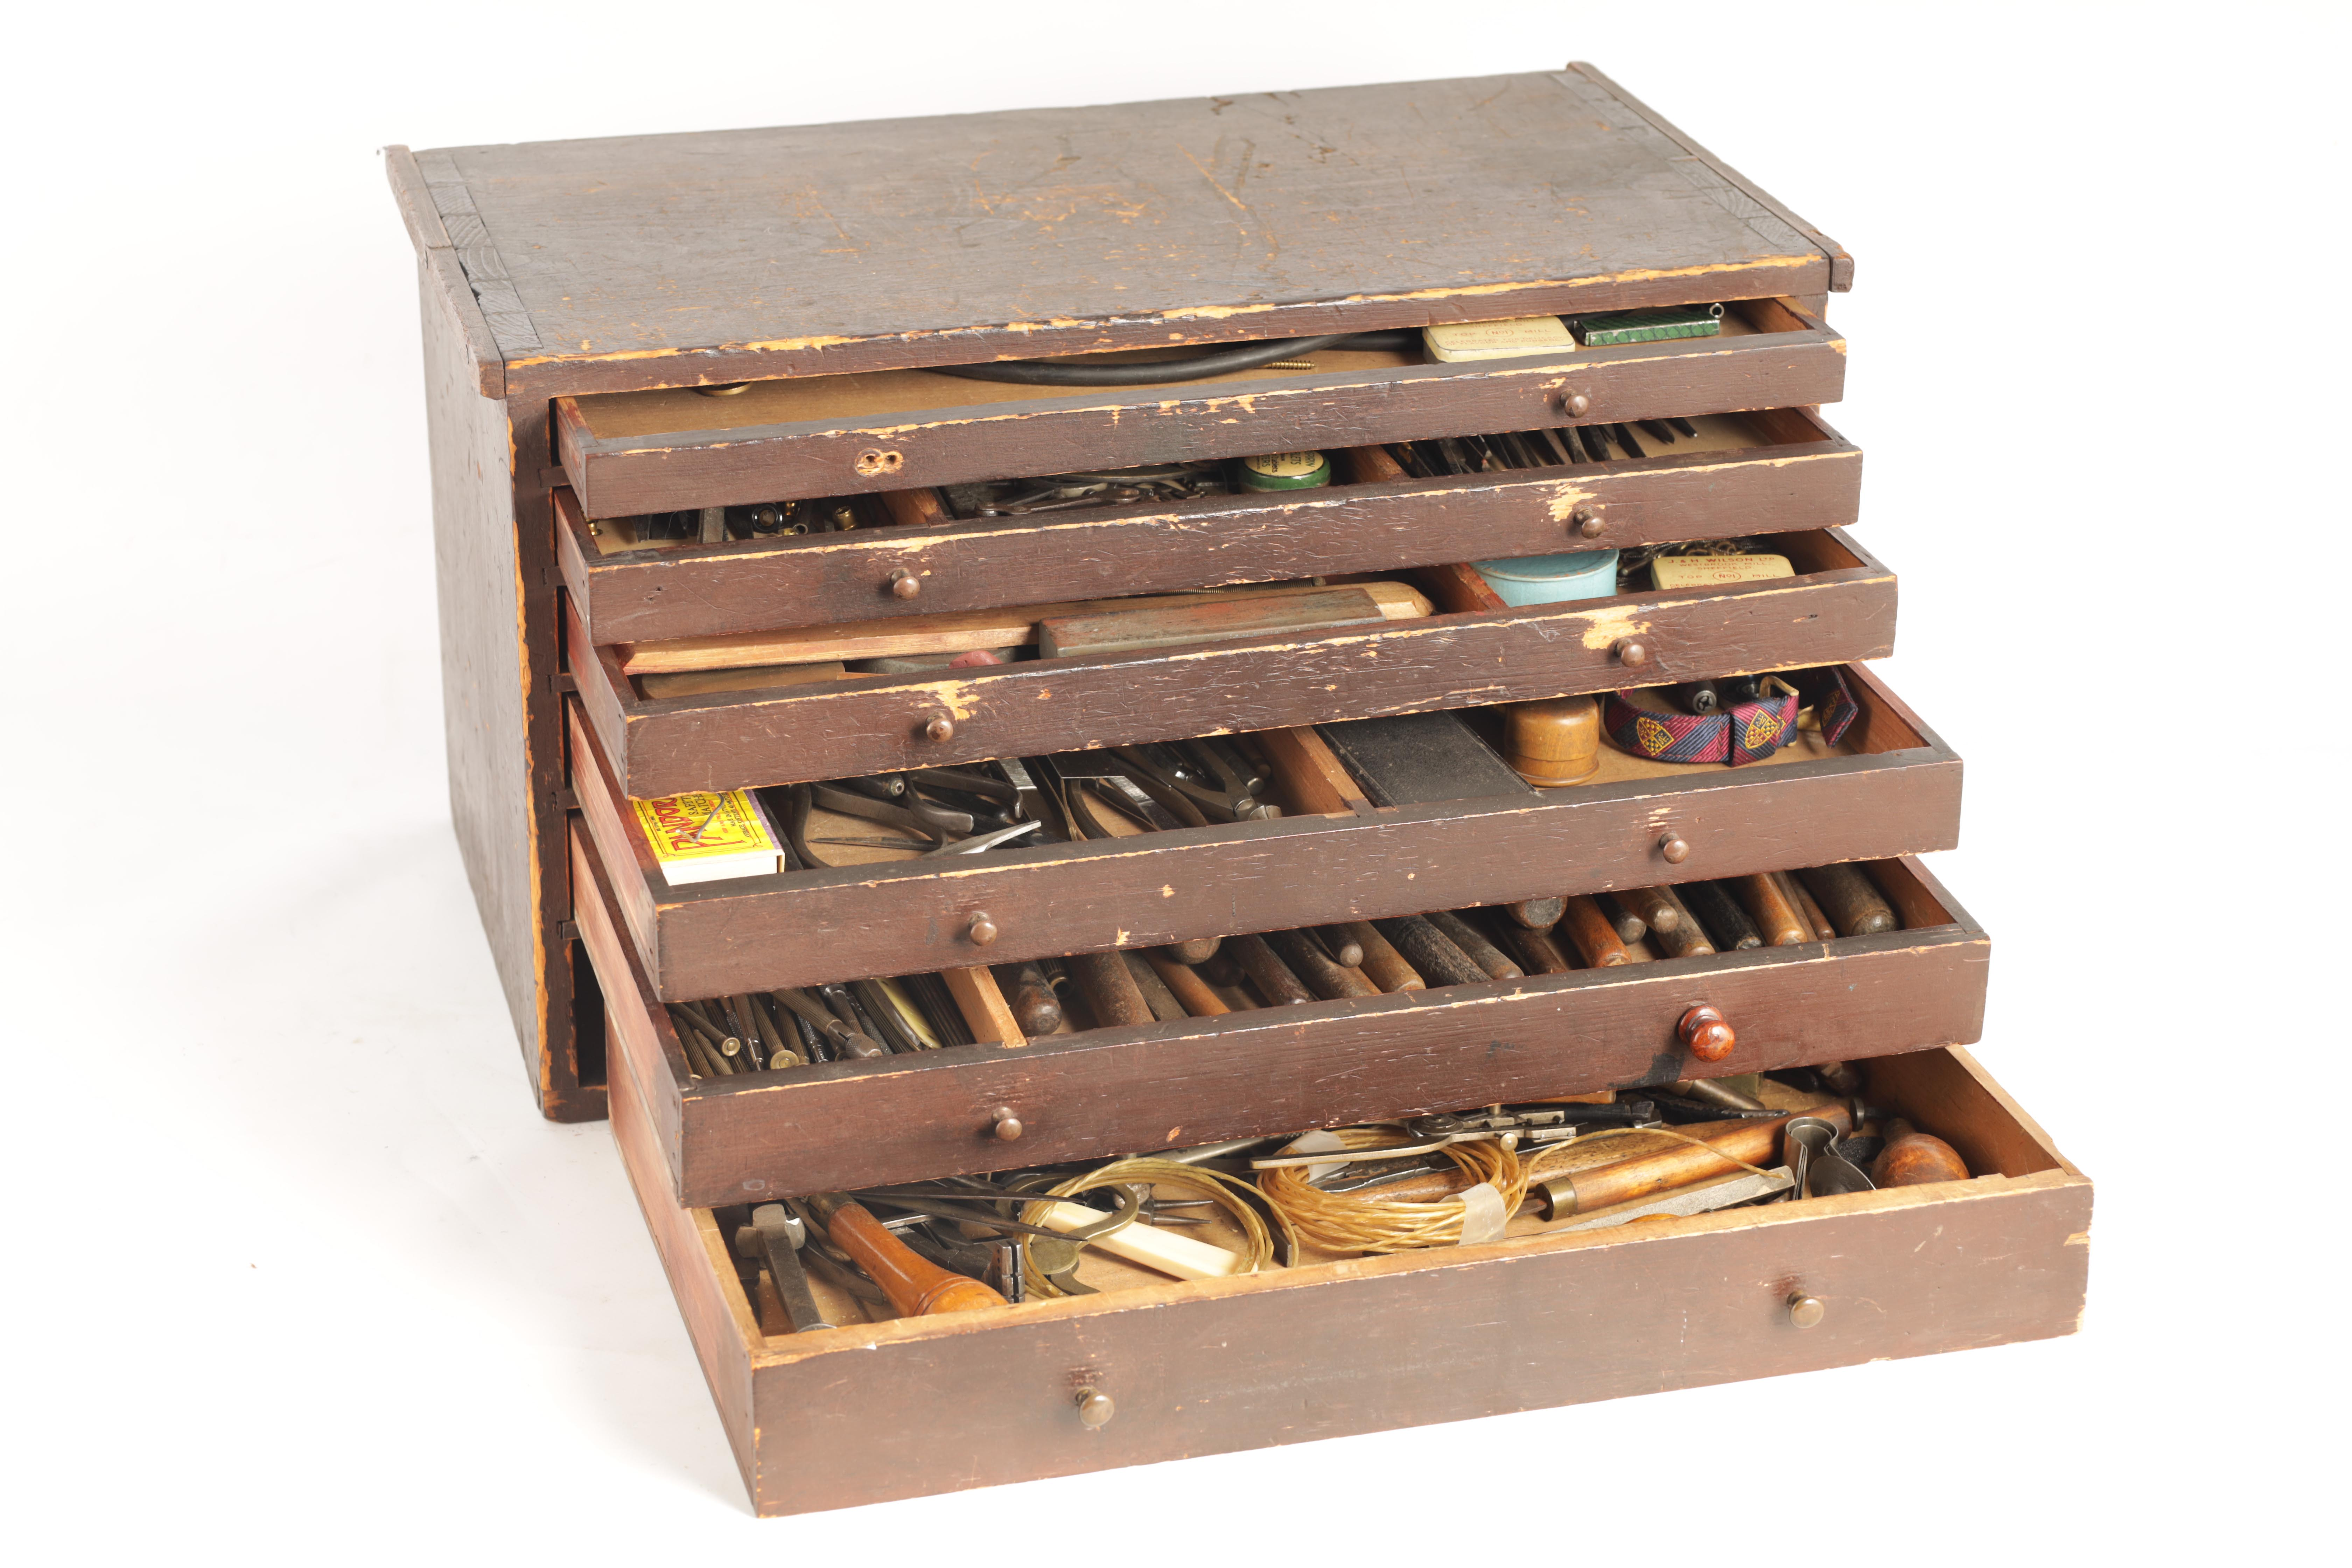 A LARGE COLLECTION OF JEWELERS AND WATCHMAKERS TOOLS contained in a set of pine drawers - Image 11 of 12